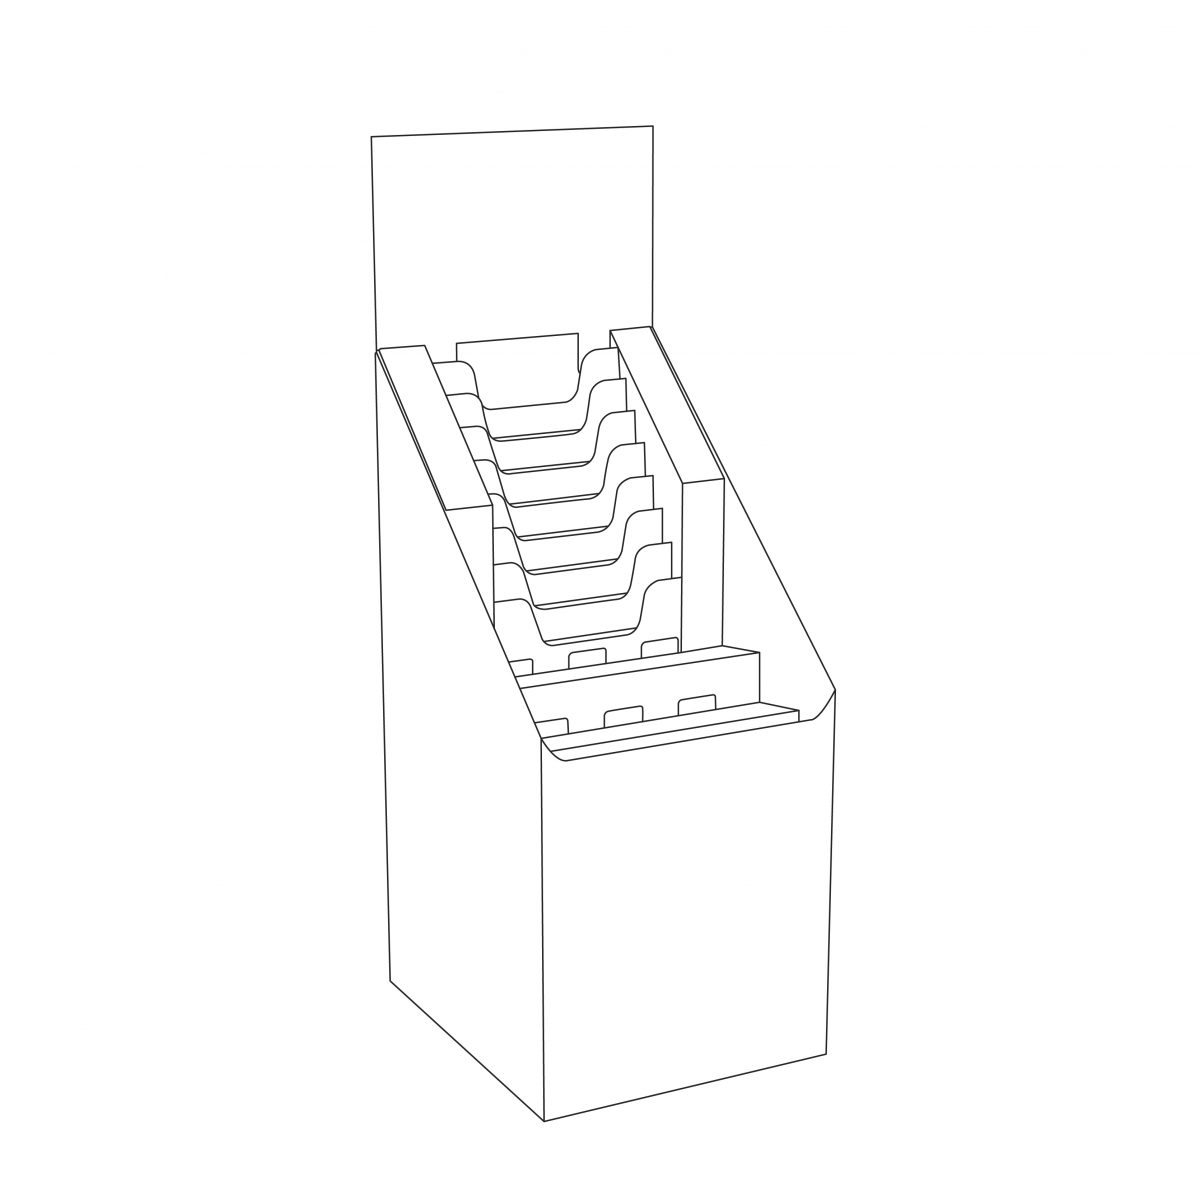 Outline of Cardboard floor display with multiple file holders, a header and 2 shelves, size of a quarter pallet